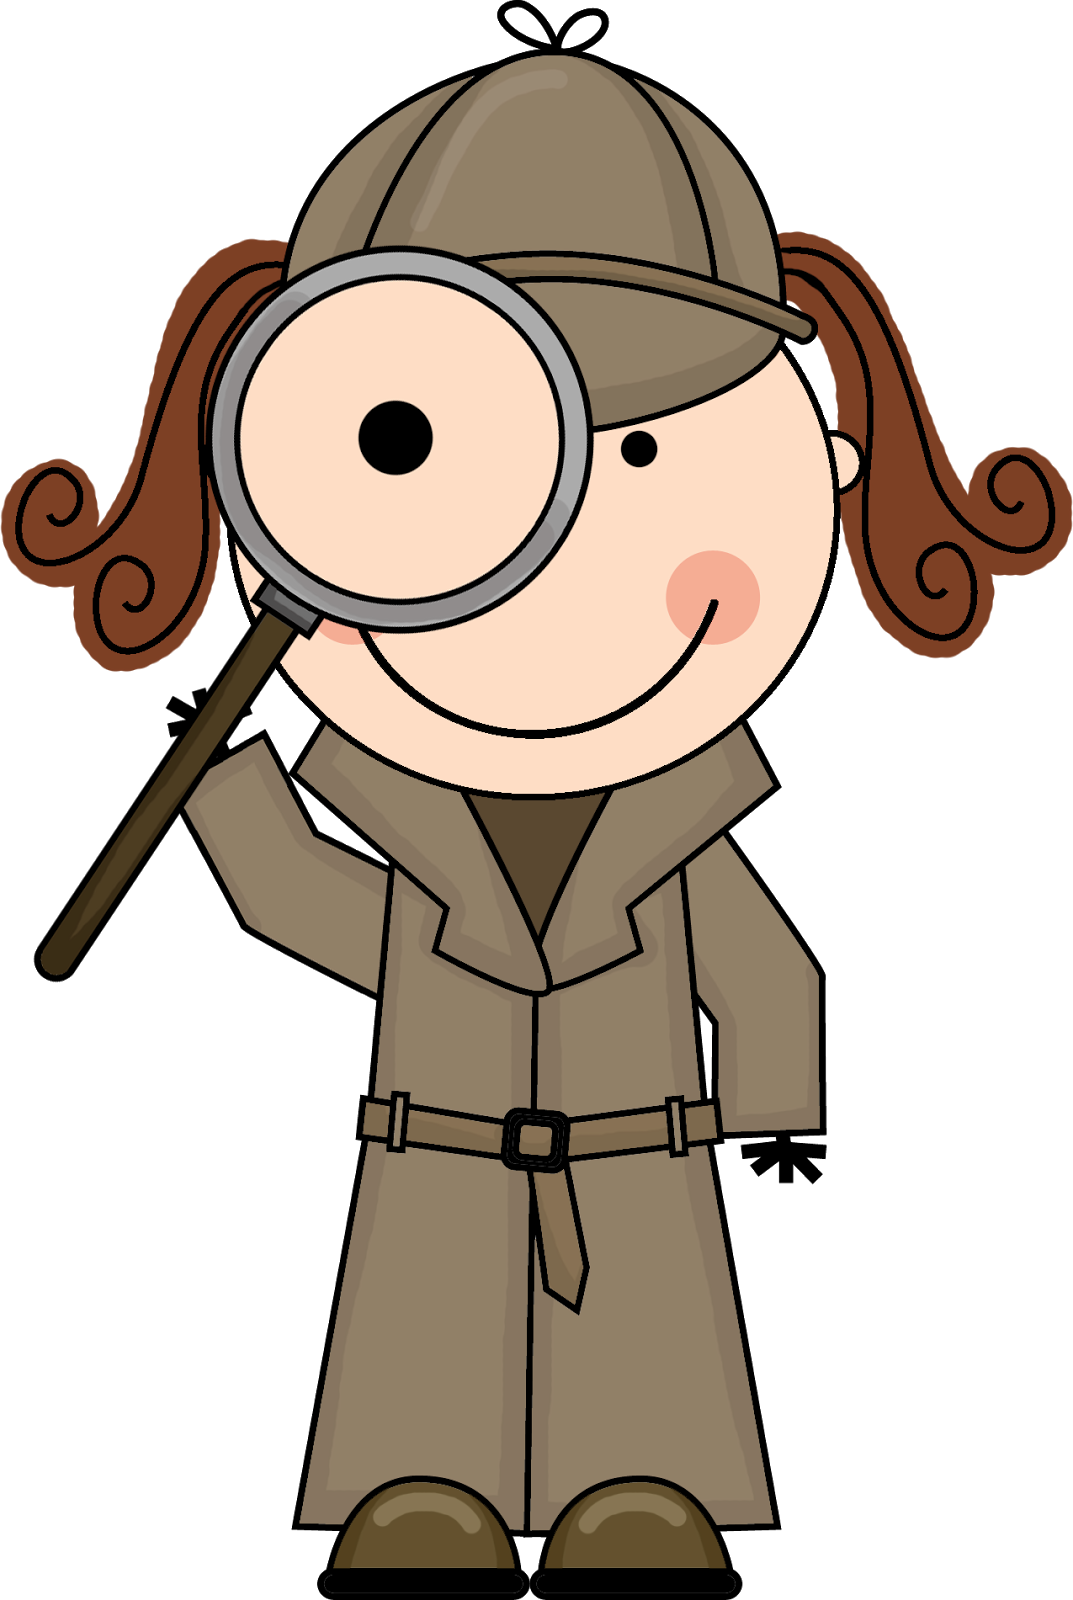 kid detective clipart google search girl scout swaps pinterest rh pinterest com au detective clipart black and white detective clipart for teachers